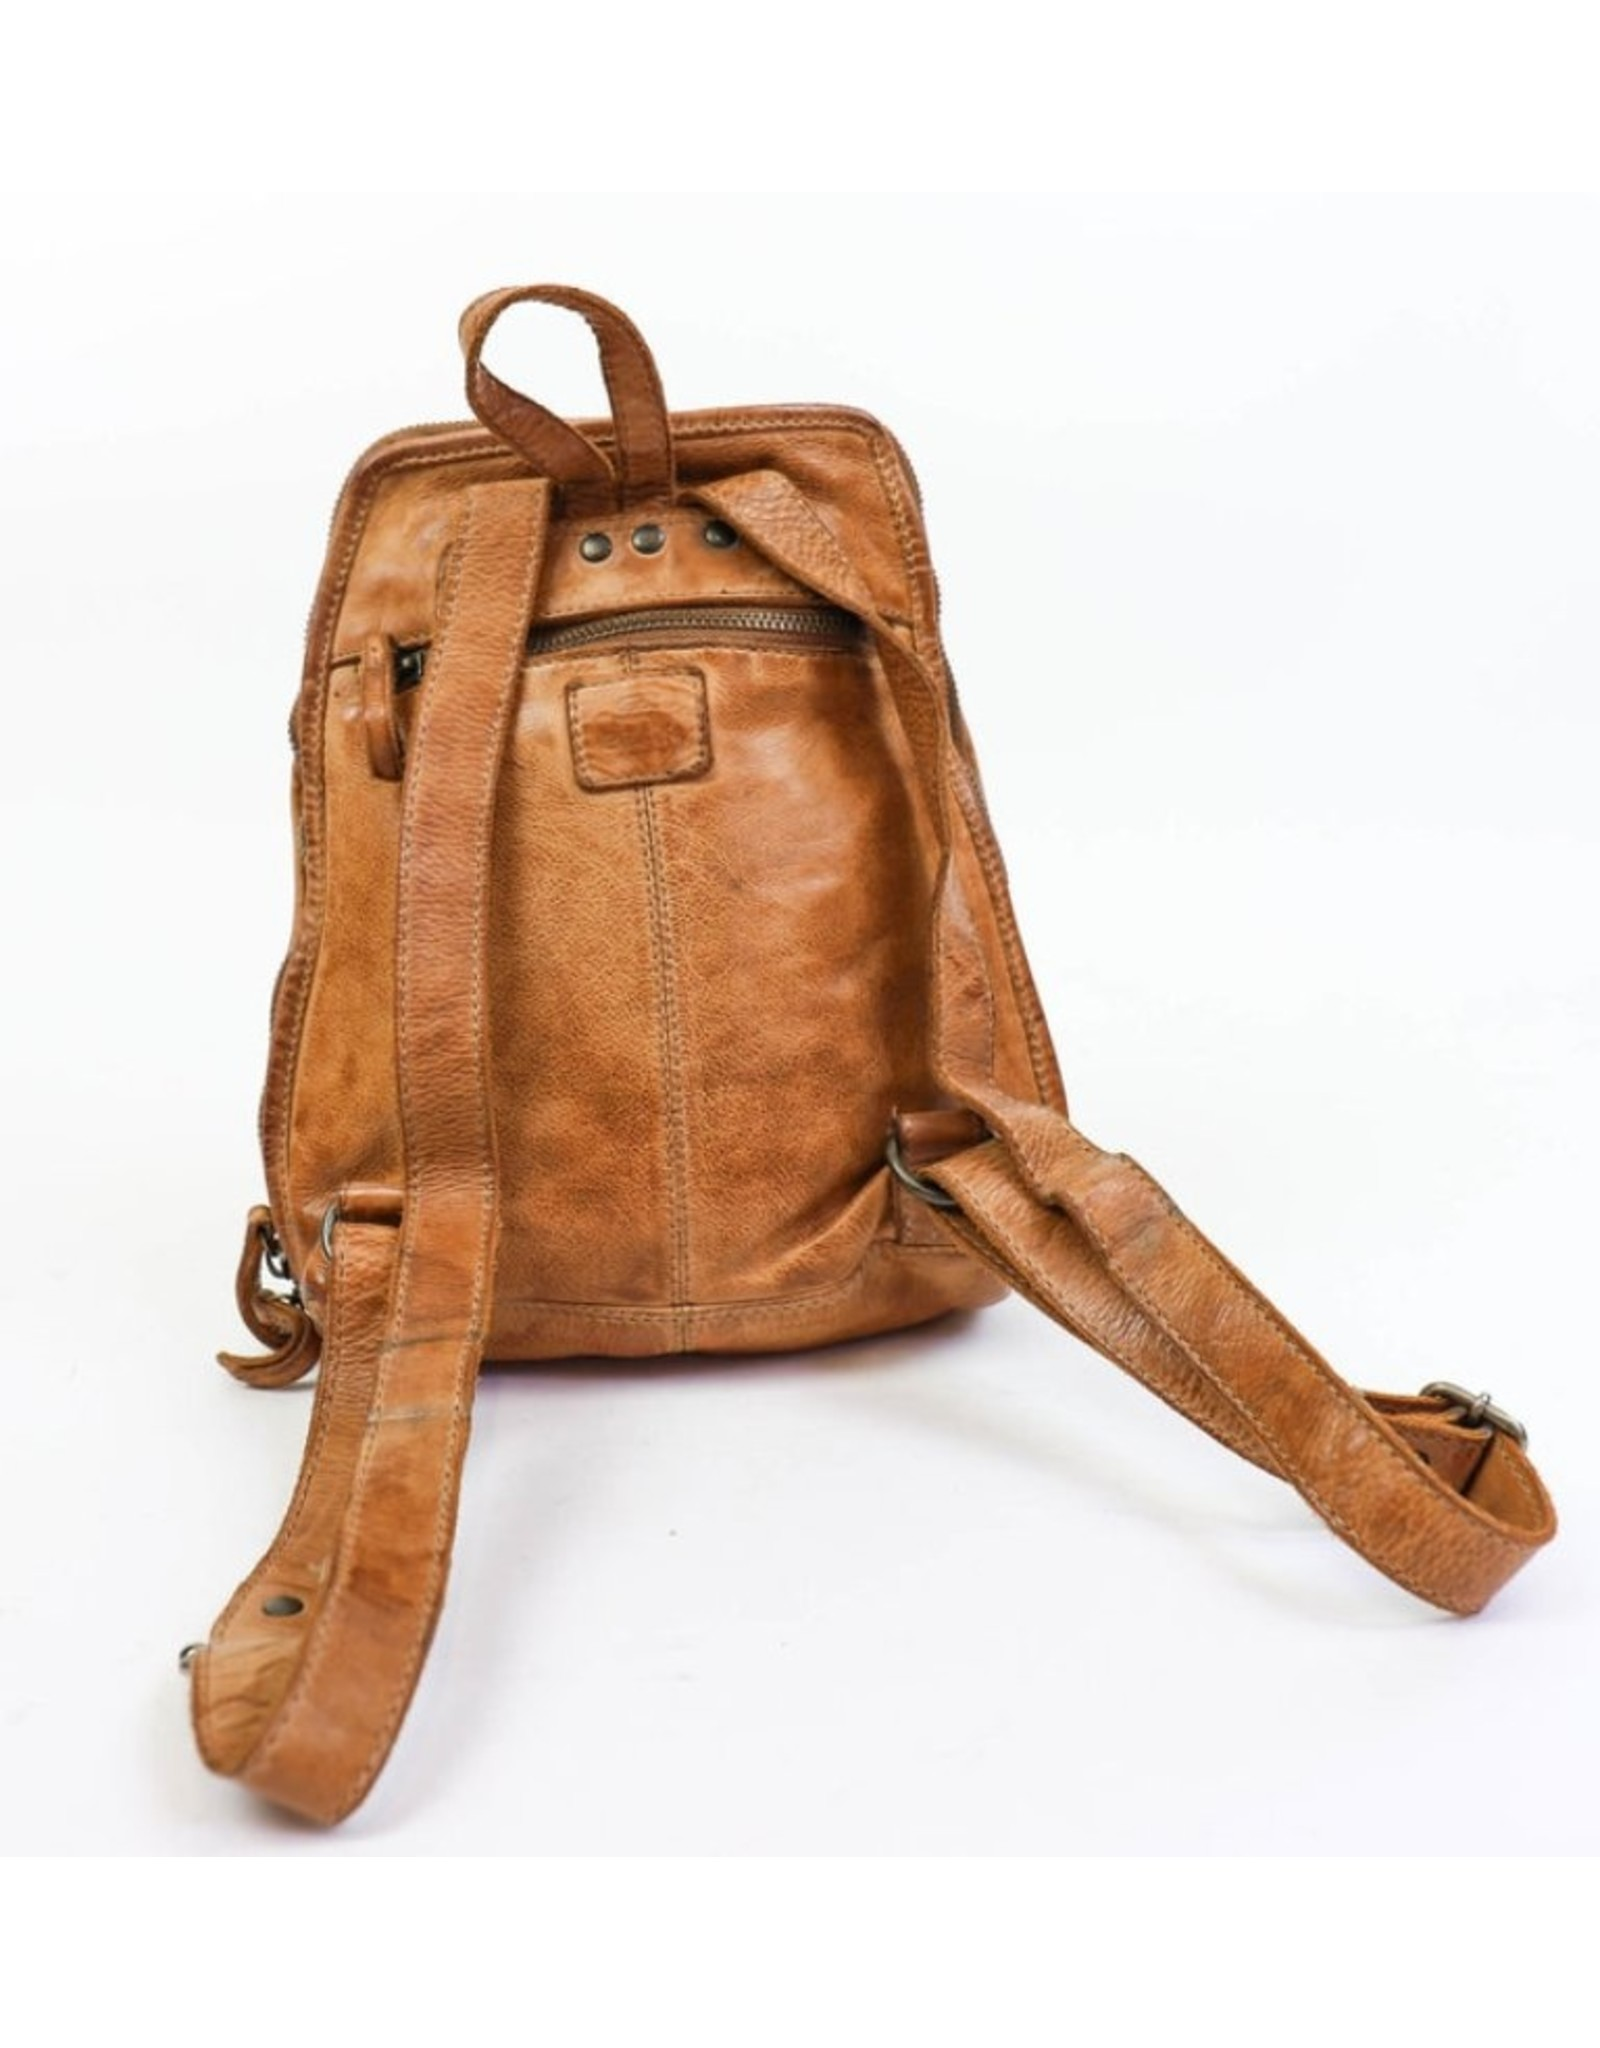 Bear Design Leather backpacks - Bear Design leather backpack CL32684